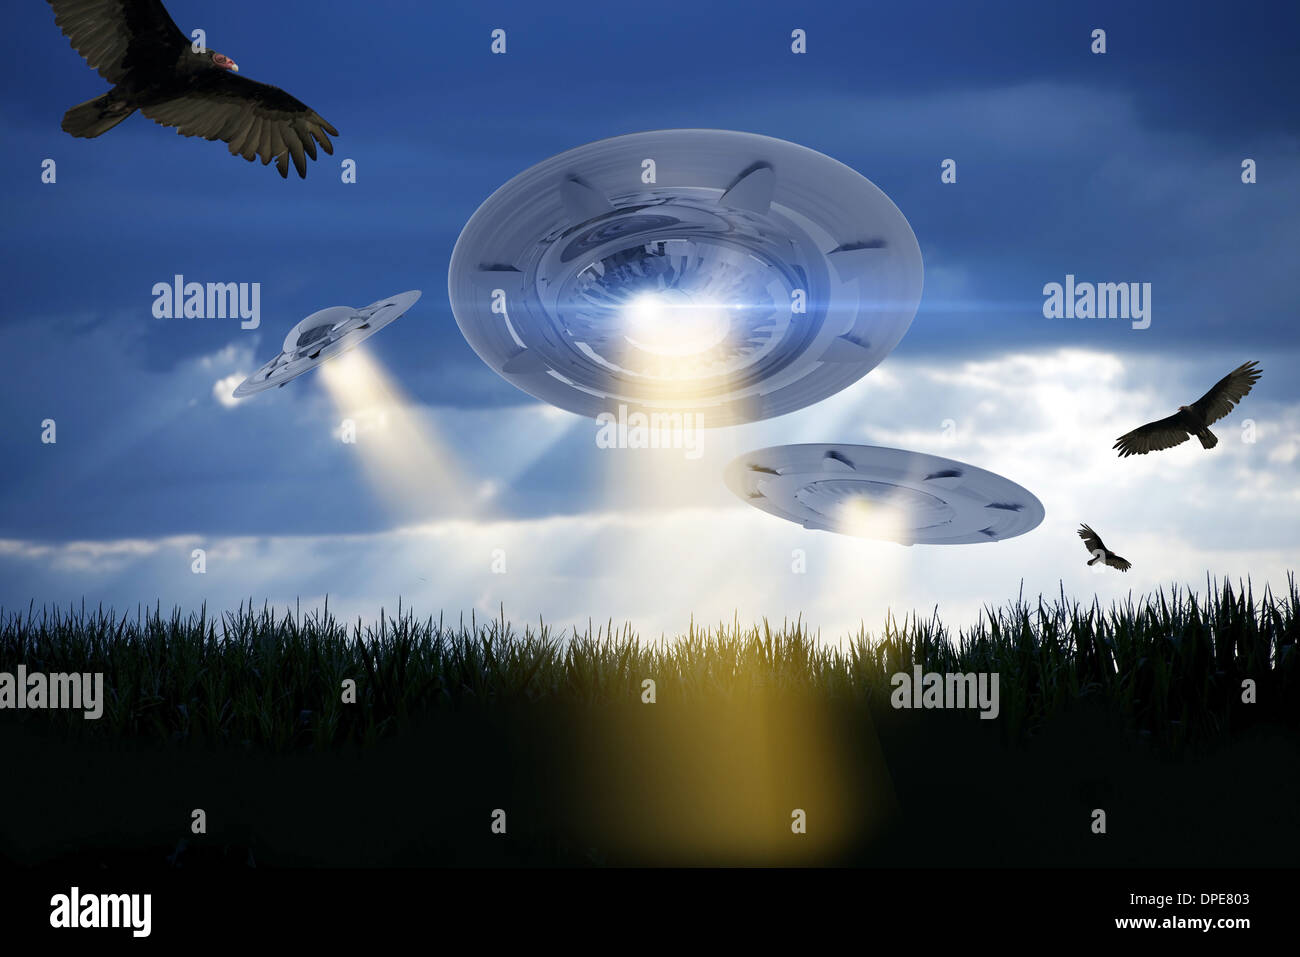 UFO Attack Illustration. Three UFOs Above Corn Field Attacking the Earth. Extraterrestrials Collection. - Stock Image